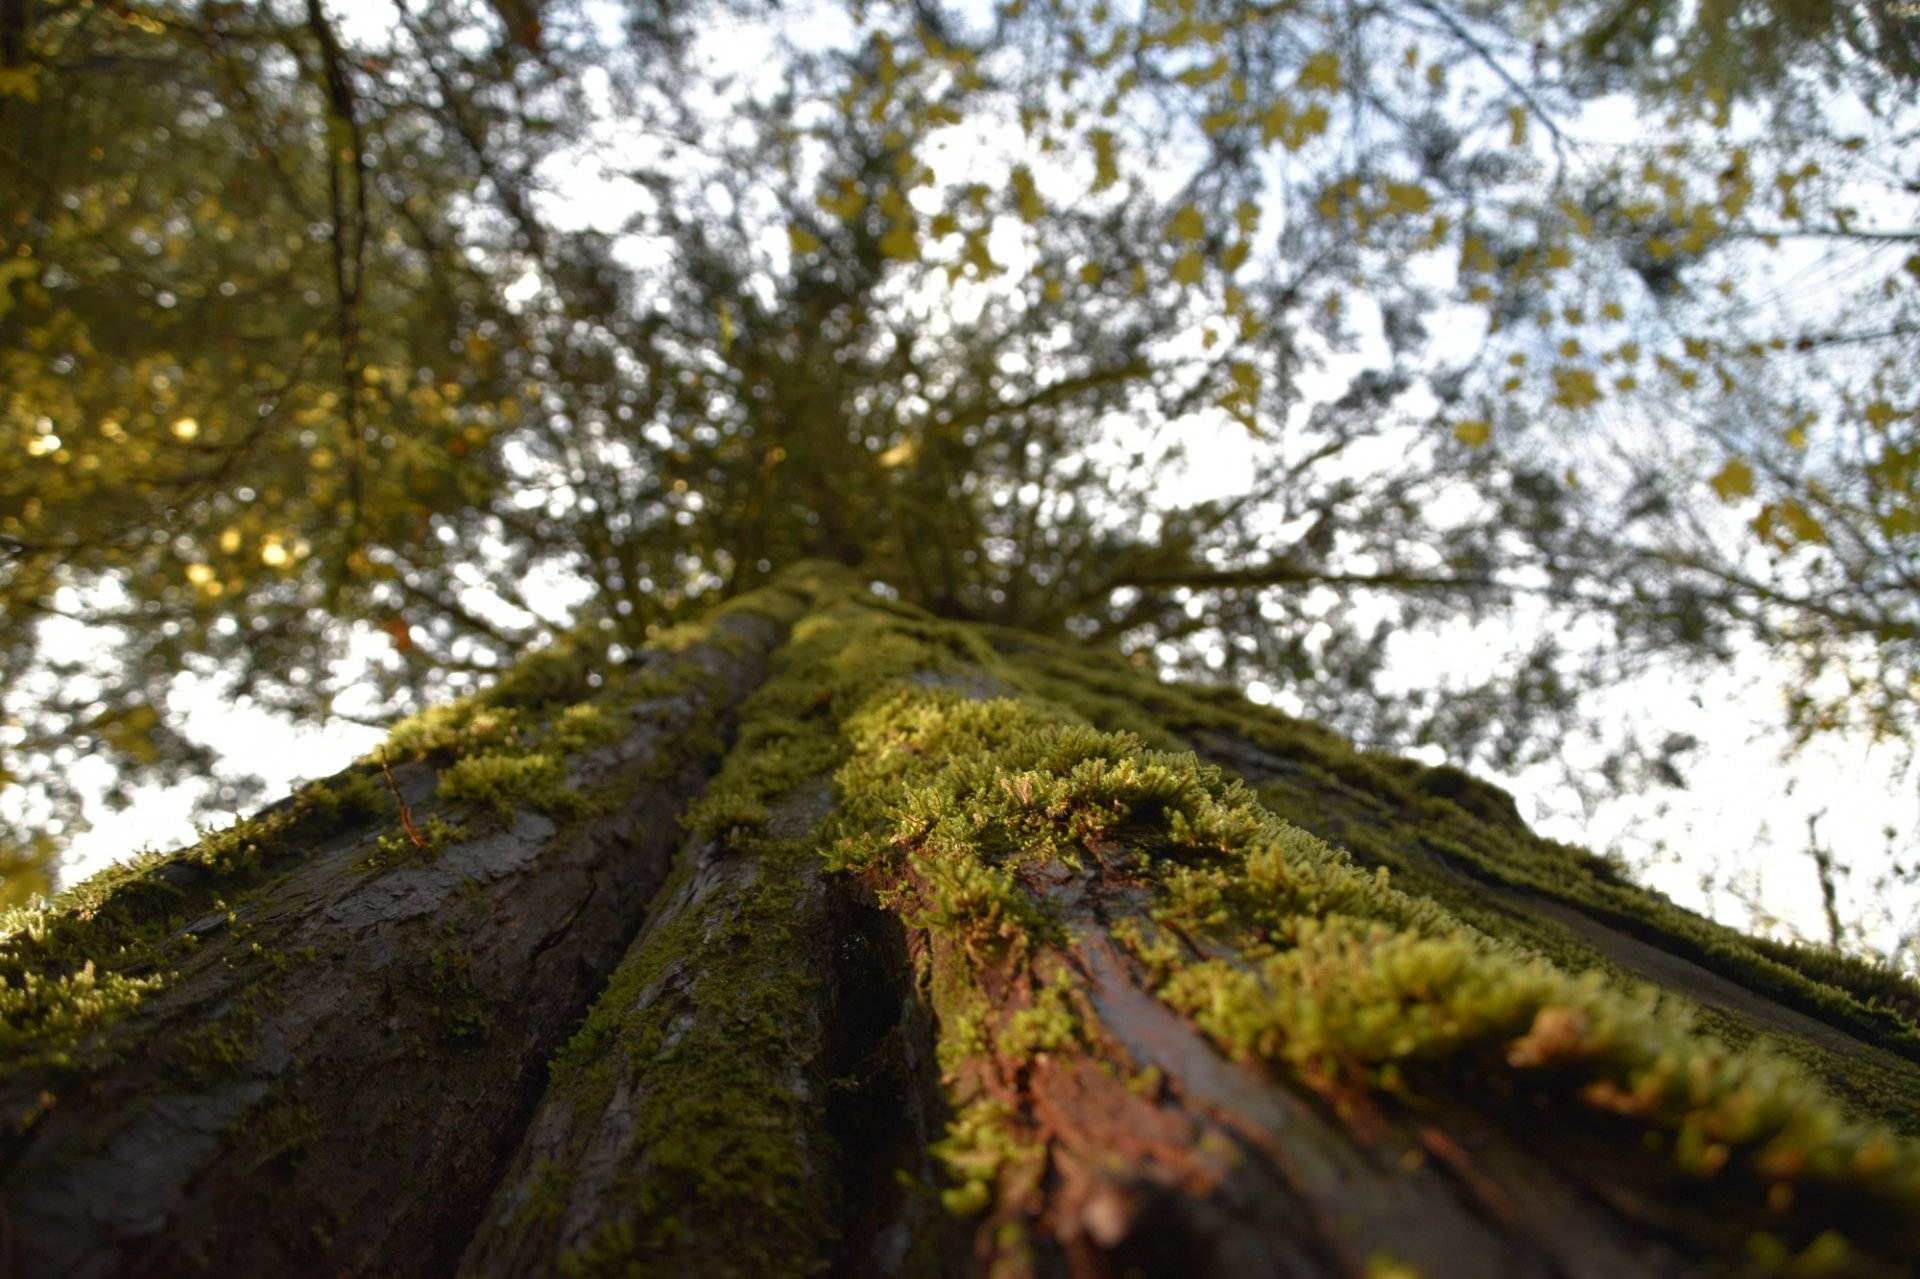 A giant moss covered old growth western red cedar along on HSU's new Jacoby Creek forest on Nov. 25. Photo by Walter Hackett